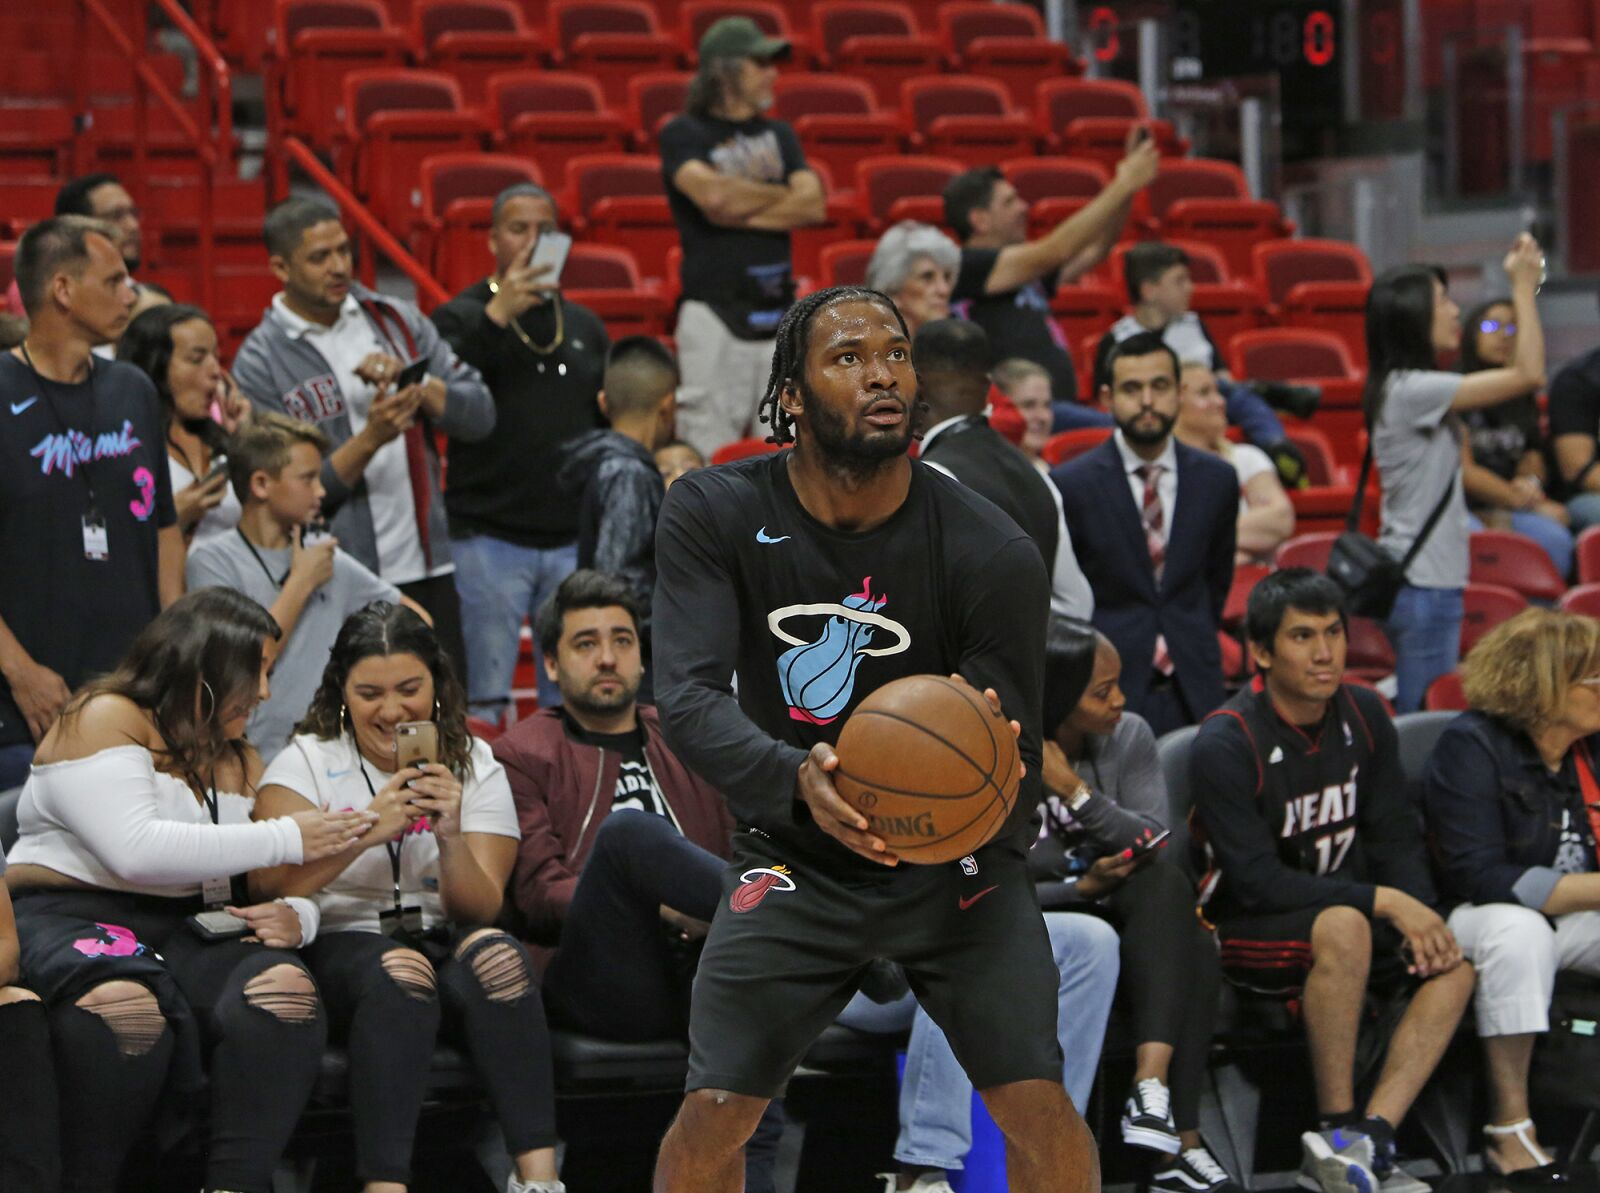 Miami Heat: Should we expect Justise Winslow to maintain 3-point shot?